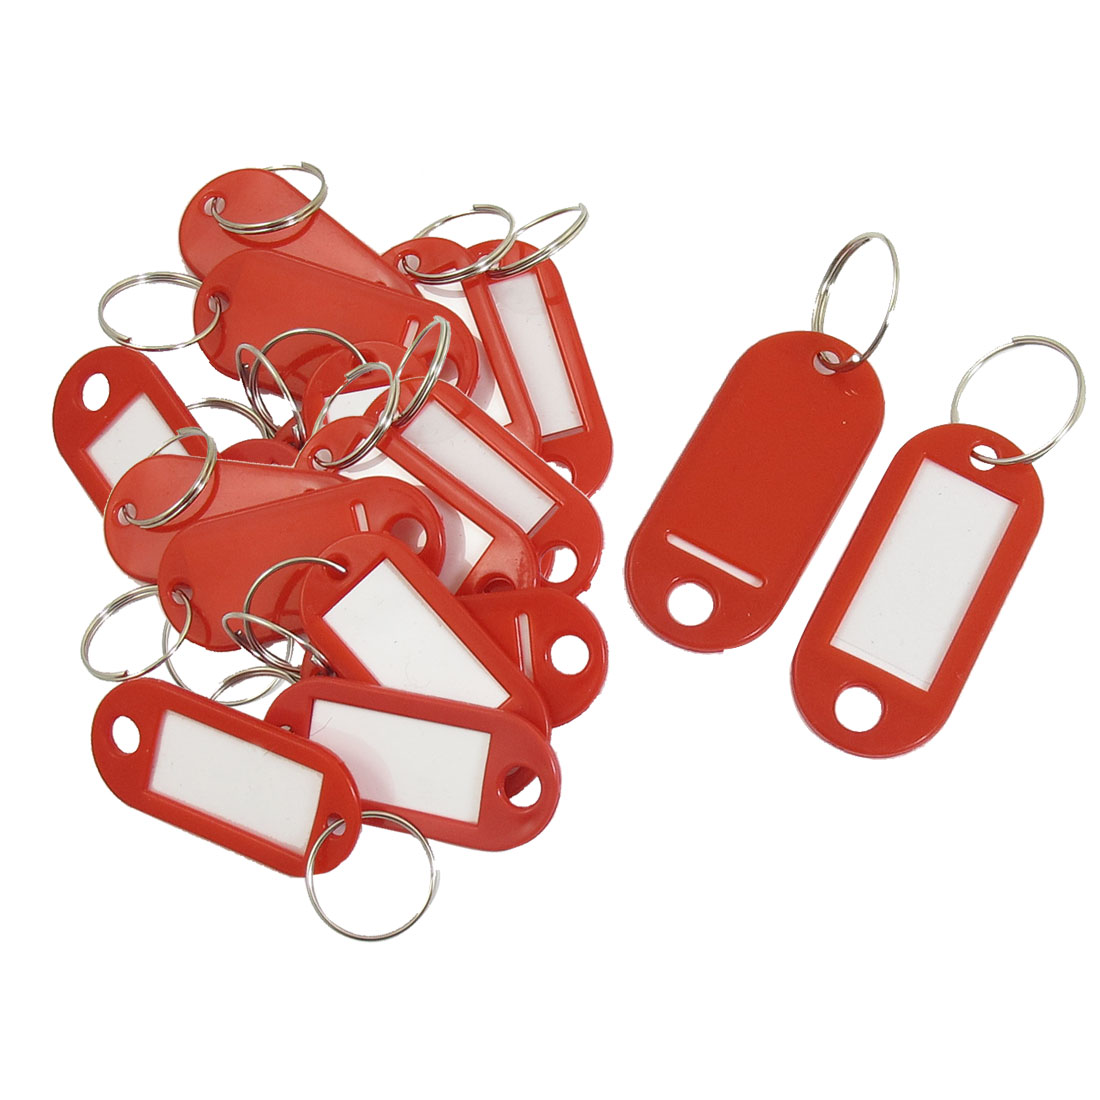 Key ID Label Tags Split Ring Keyring Fobs Luggage Keychain Red 20 Pcs